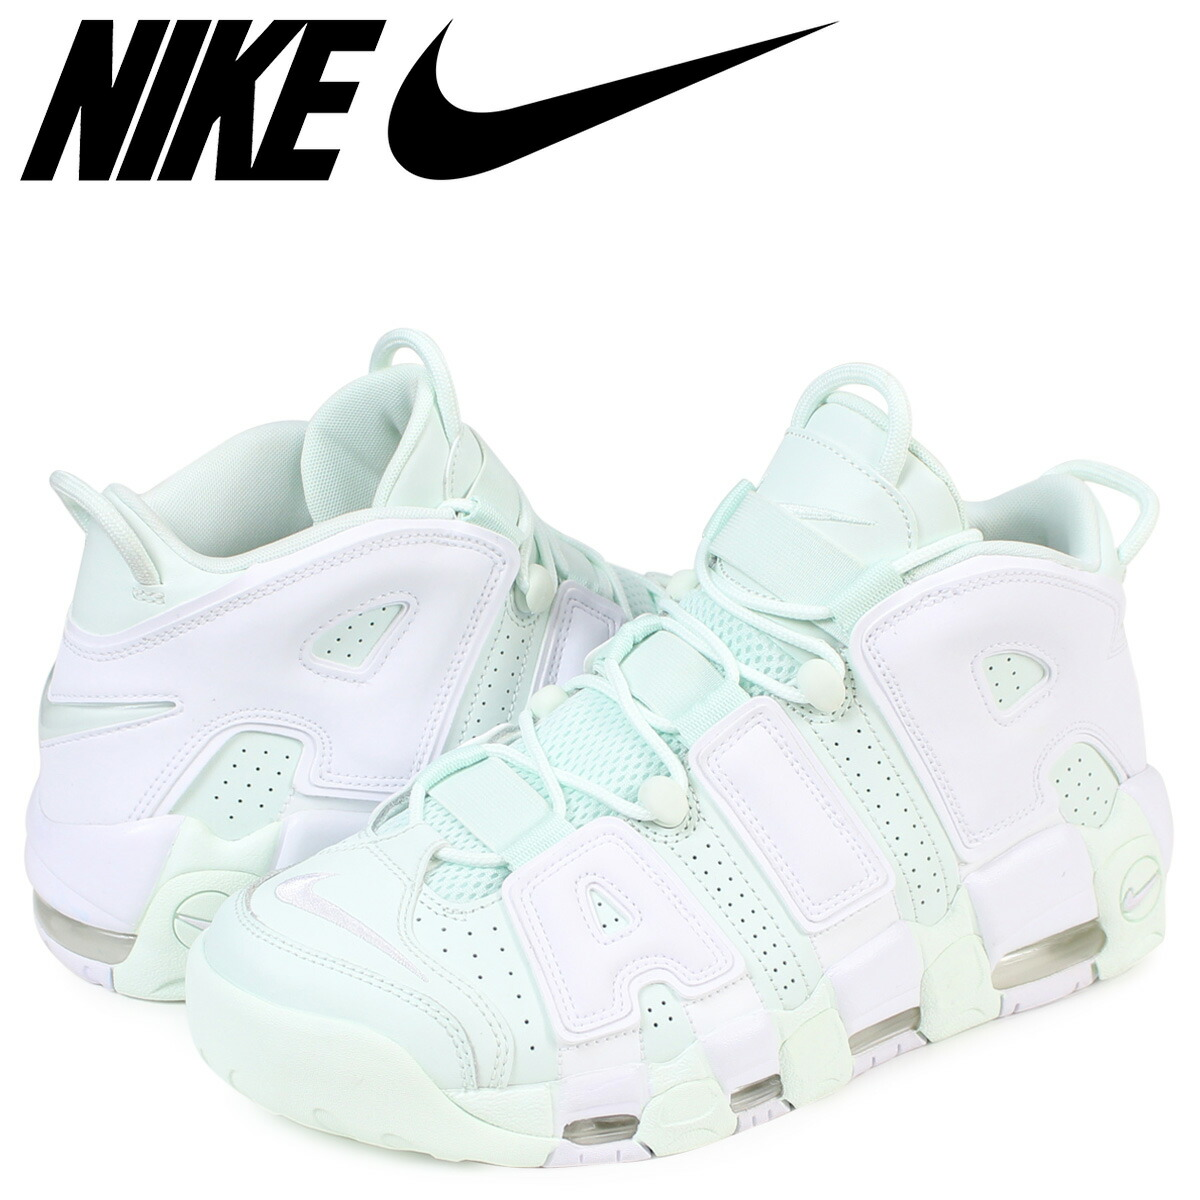 ALLSPORTS  NIKE WMNS AIR MORE UPTEMPO Nike up tempo sneakers 917 493ffb4b55bf